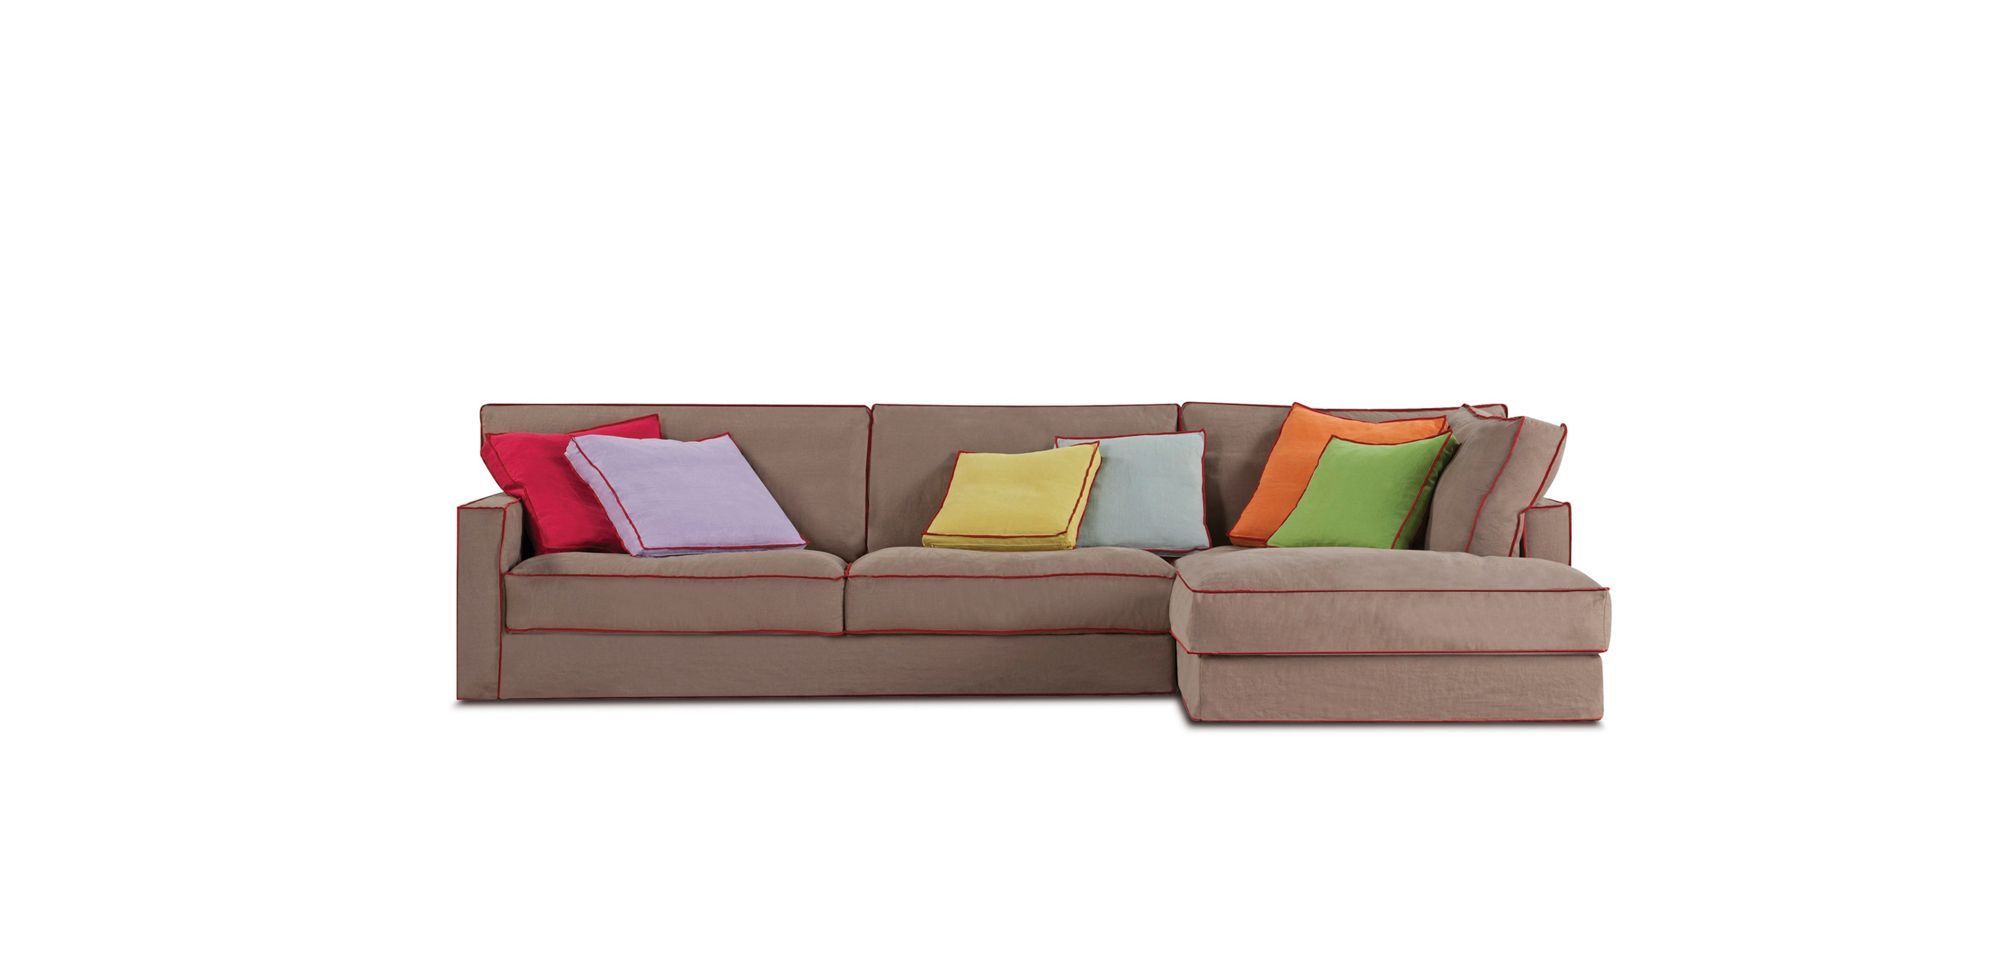 duck feather corner sofa leather outlet lewisville seat cushions in goose and feathers polyester fibers duvet on hr foam core 30